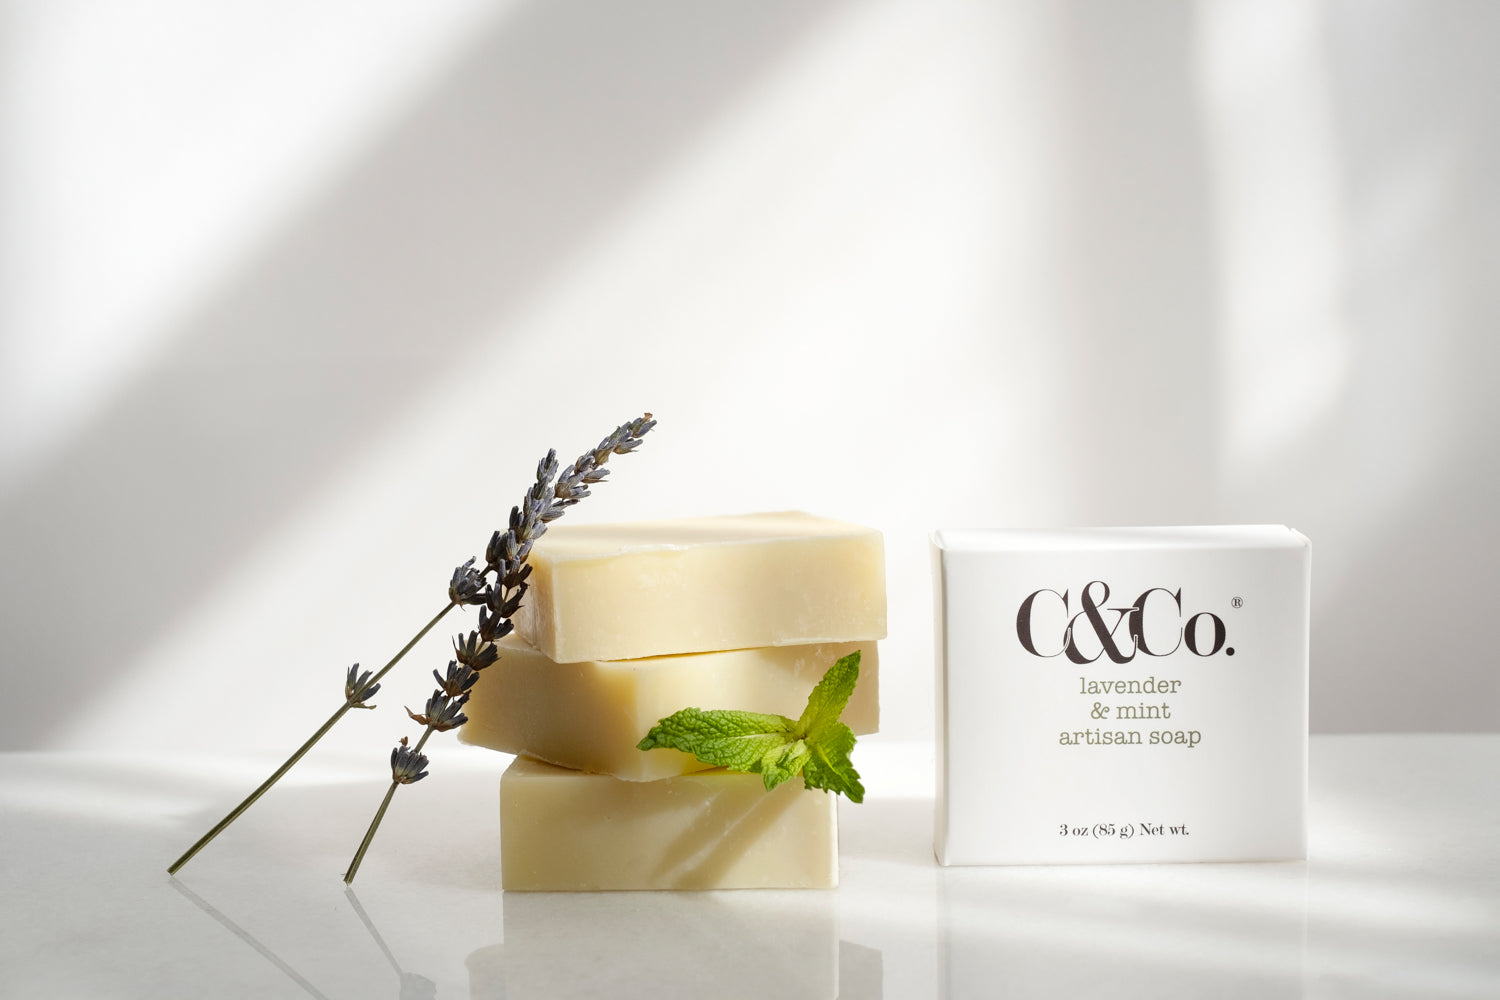 Lavender & Mint Artisan Soap - C & Co.®